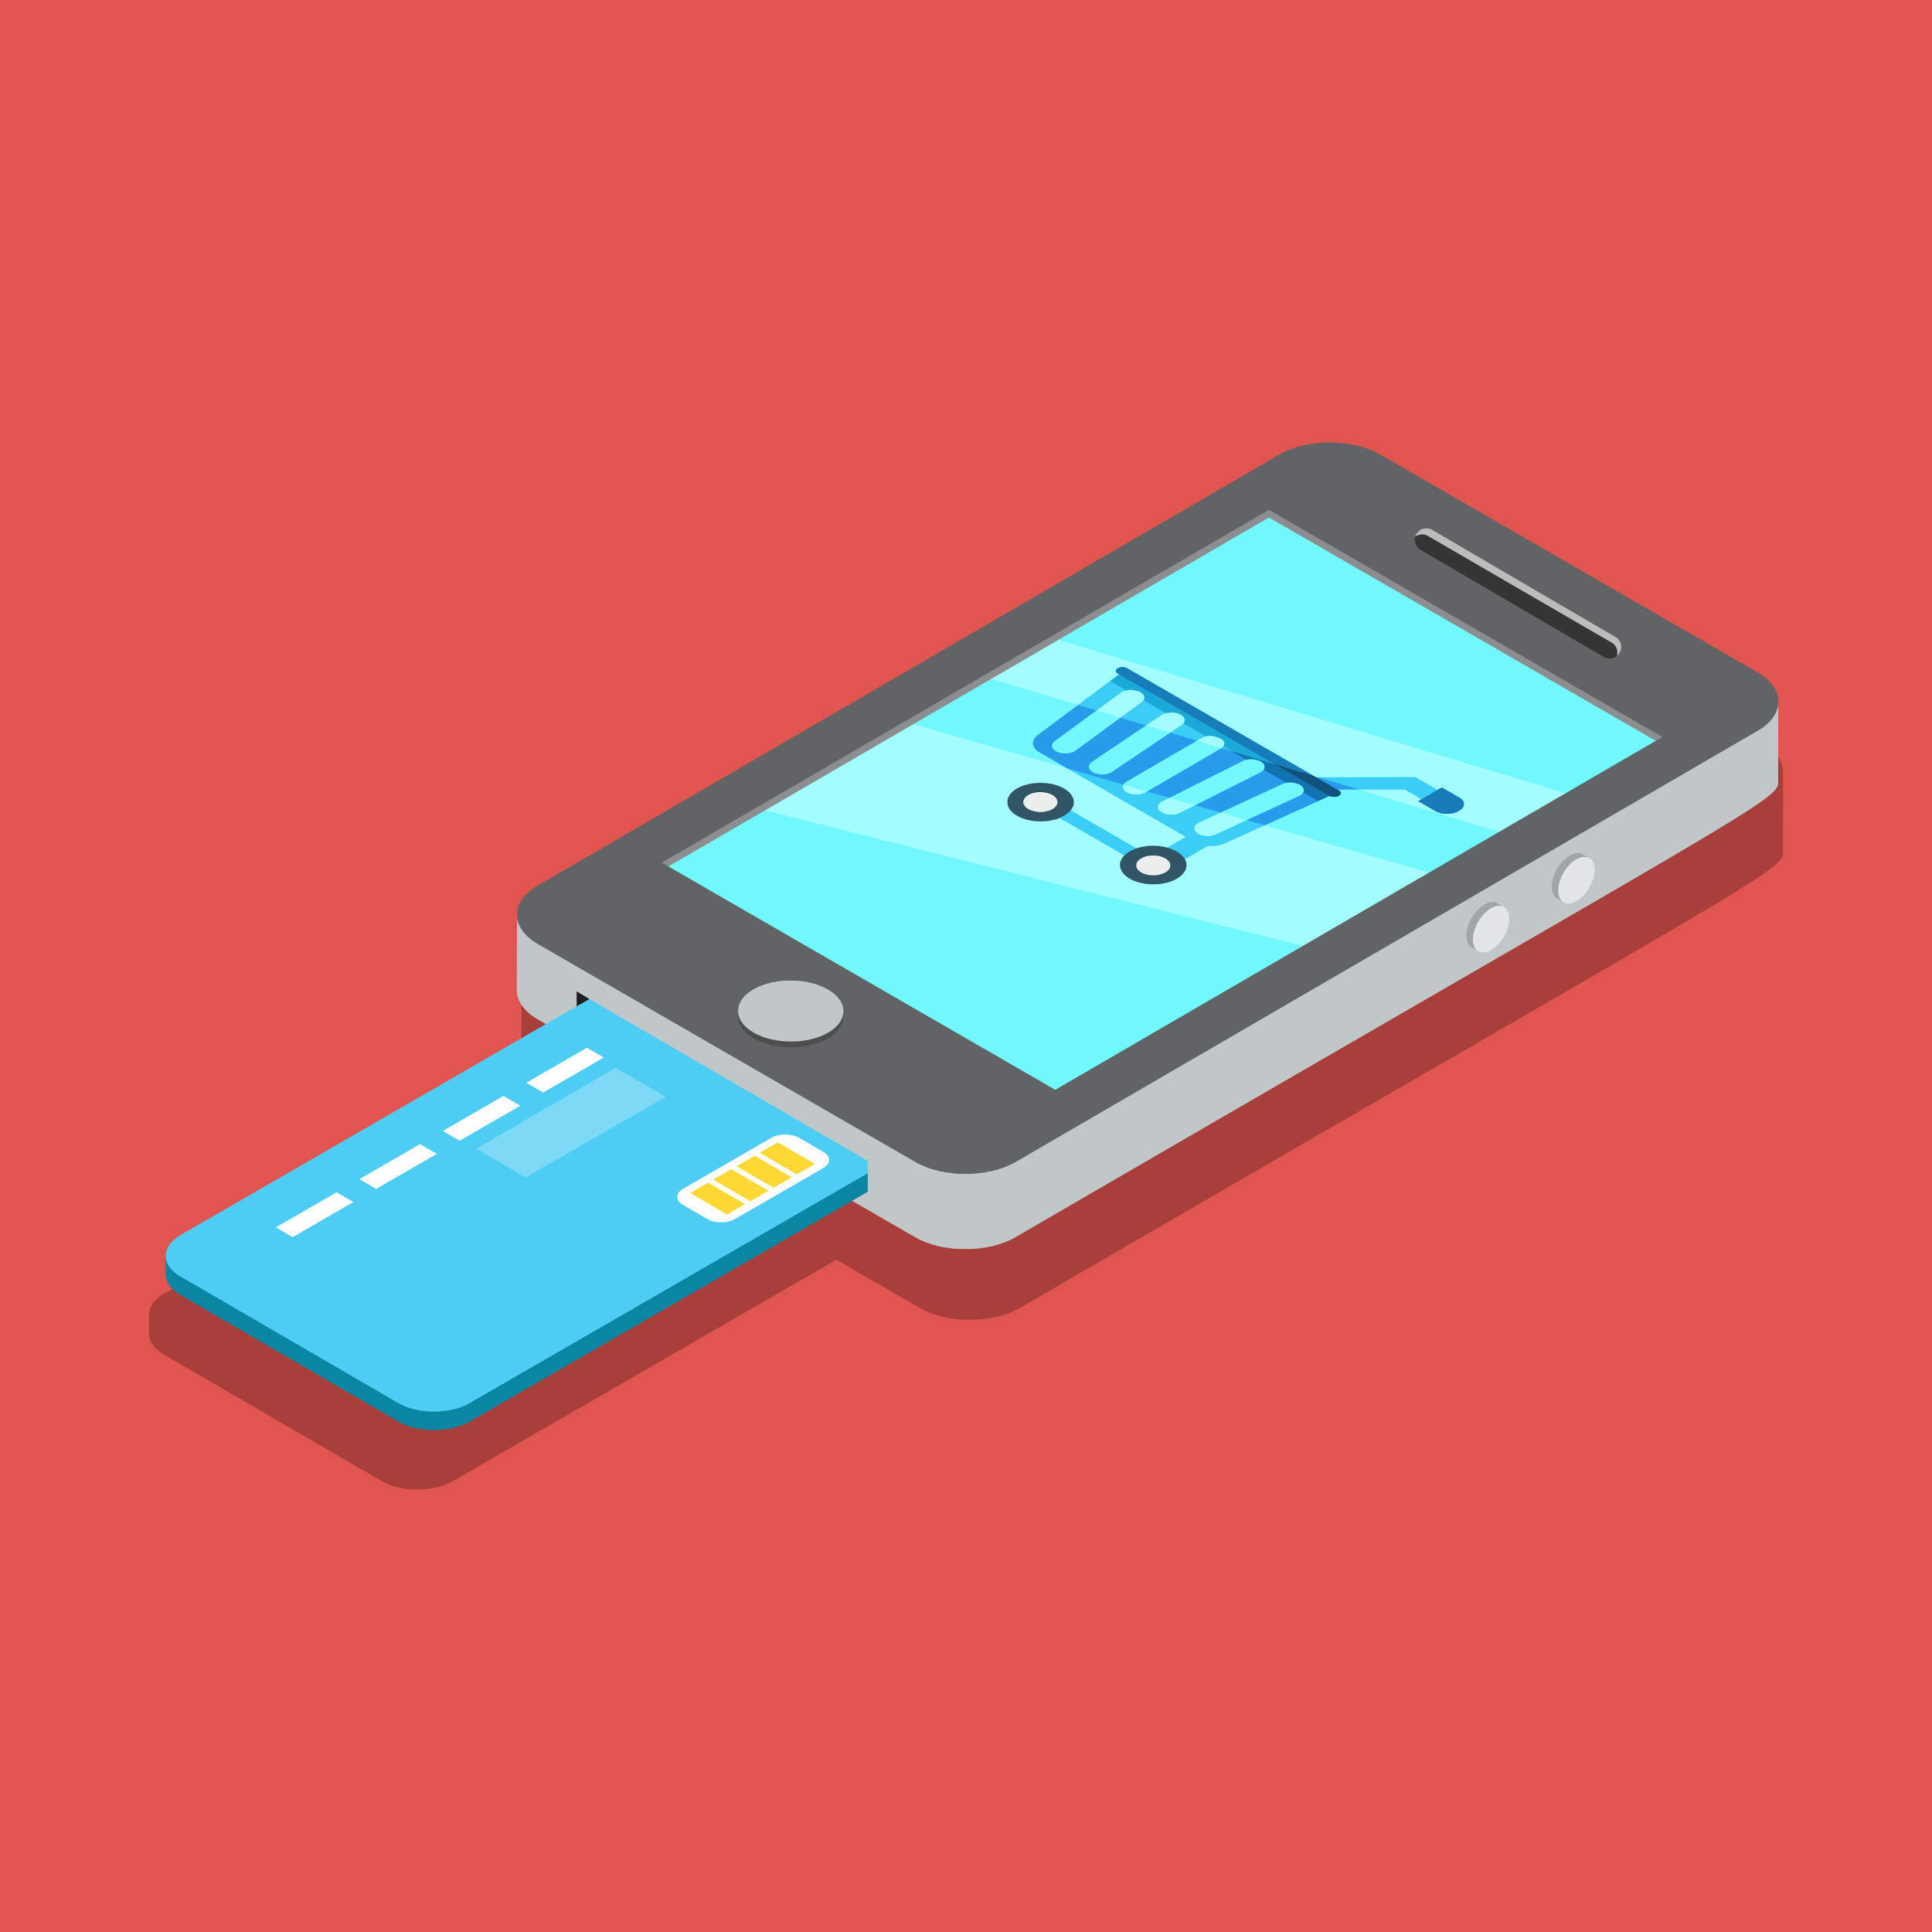 Mobile banking take up has stalled — what now?